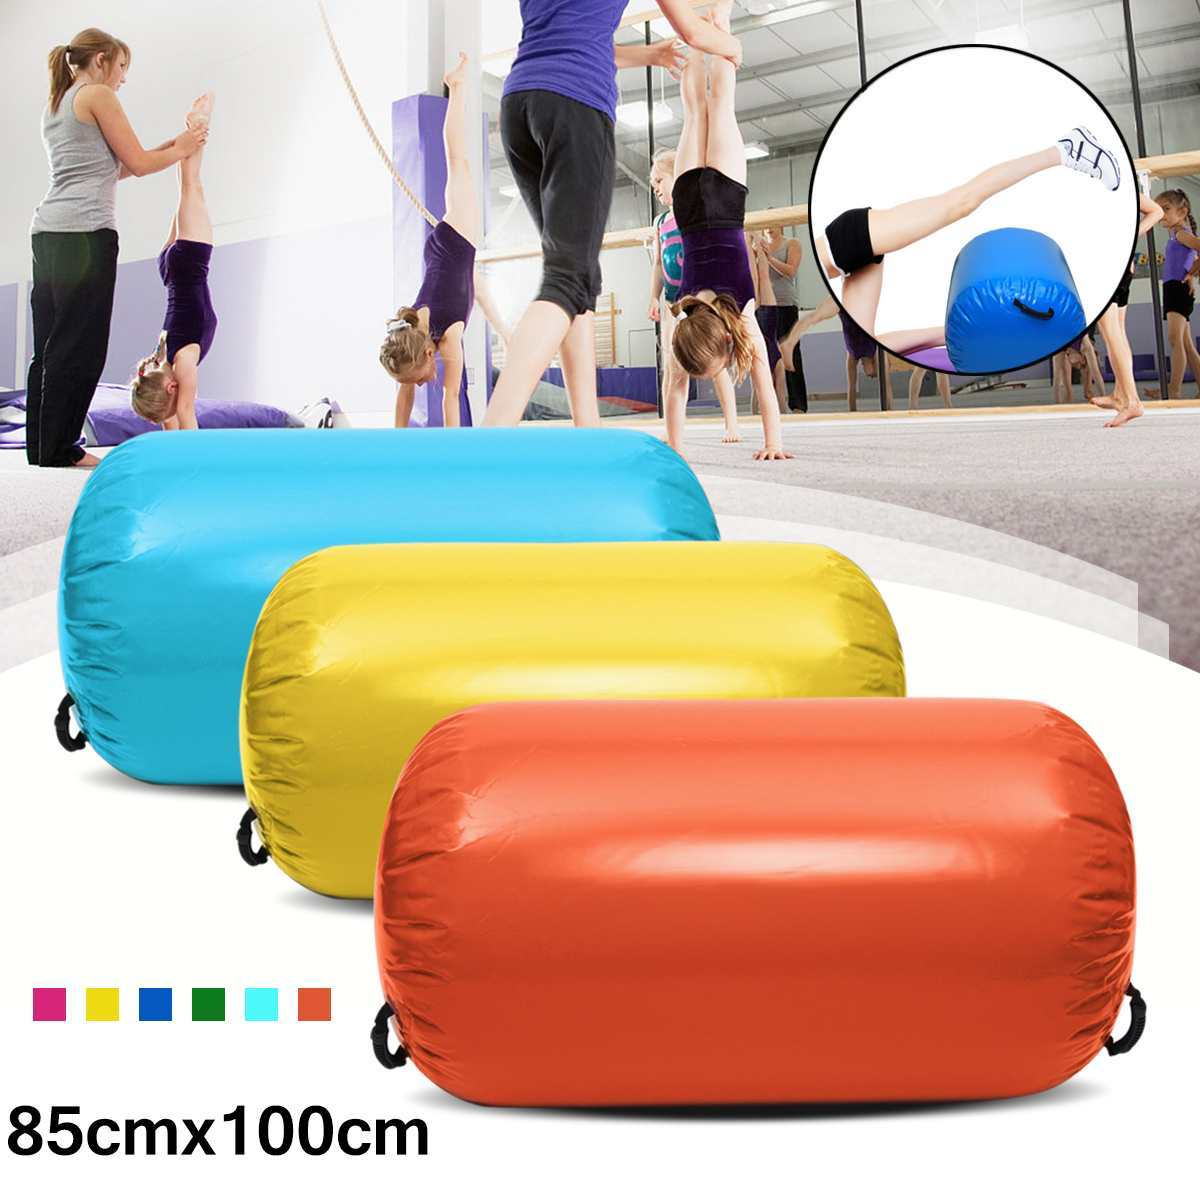 85x100cm Airtrack Inflatable Gymnastics Gym Air Mat Floor Home Gymnastics Exercise Inverted Backflip Round Column Tumbling Mat